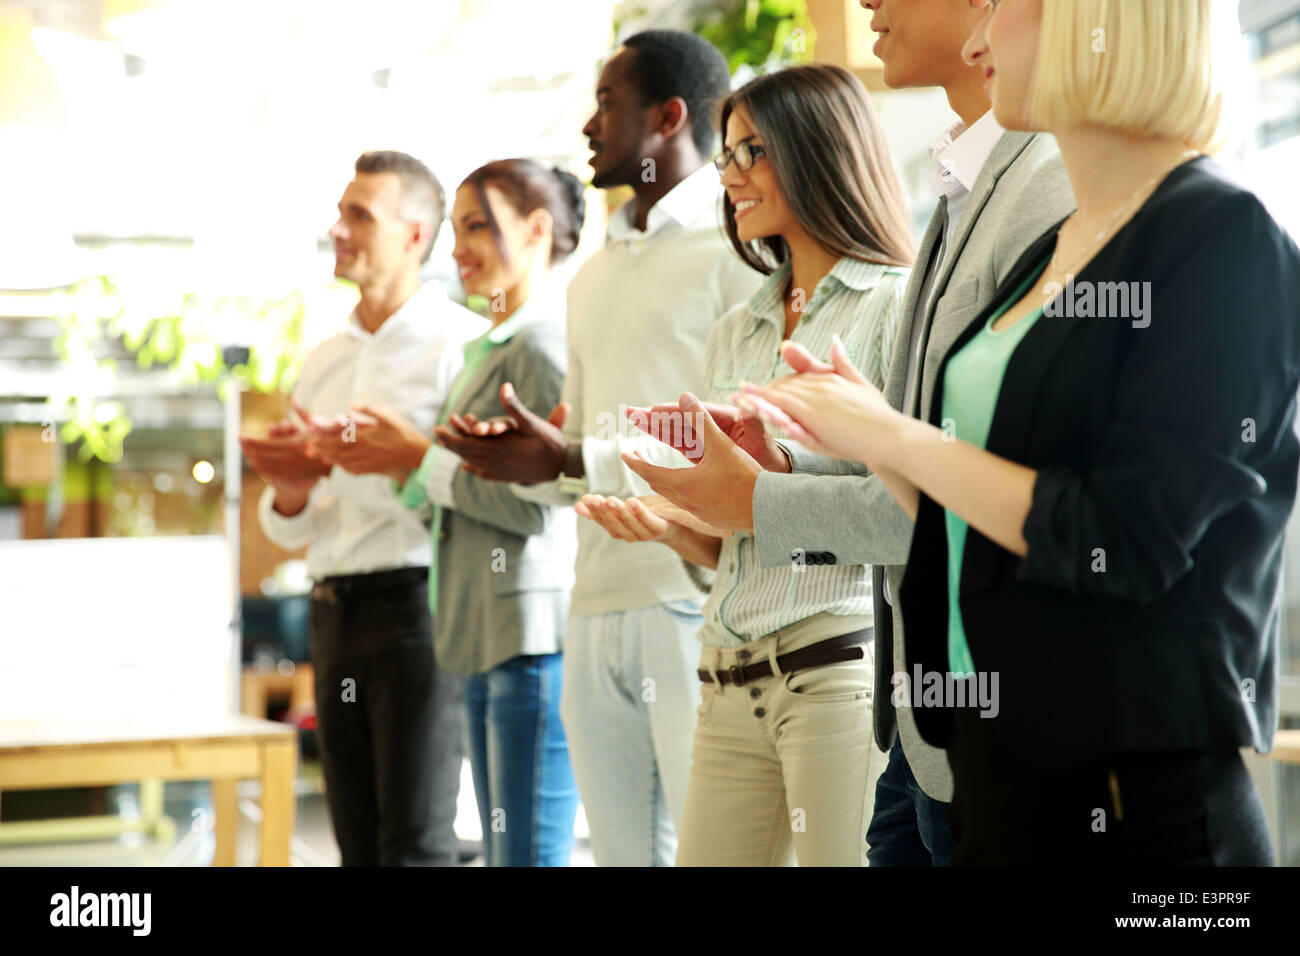 Group of cheerful business team applauding - Stock Image